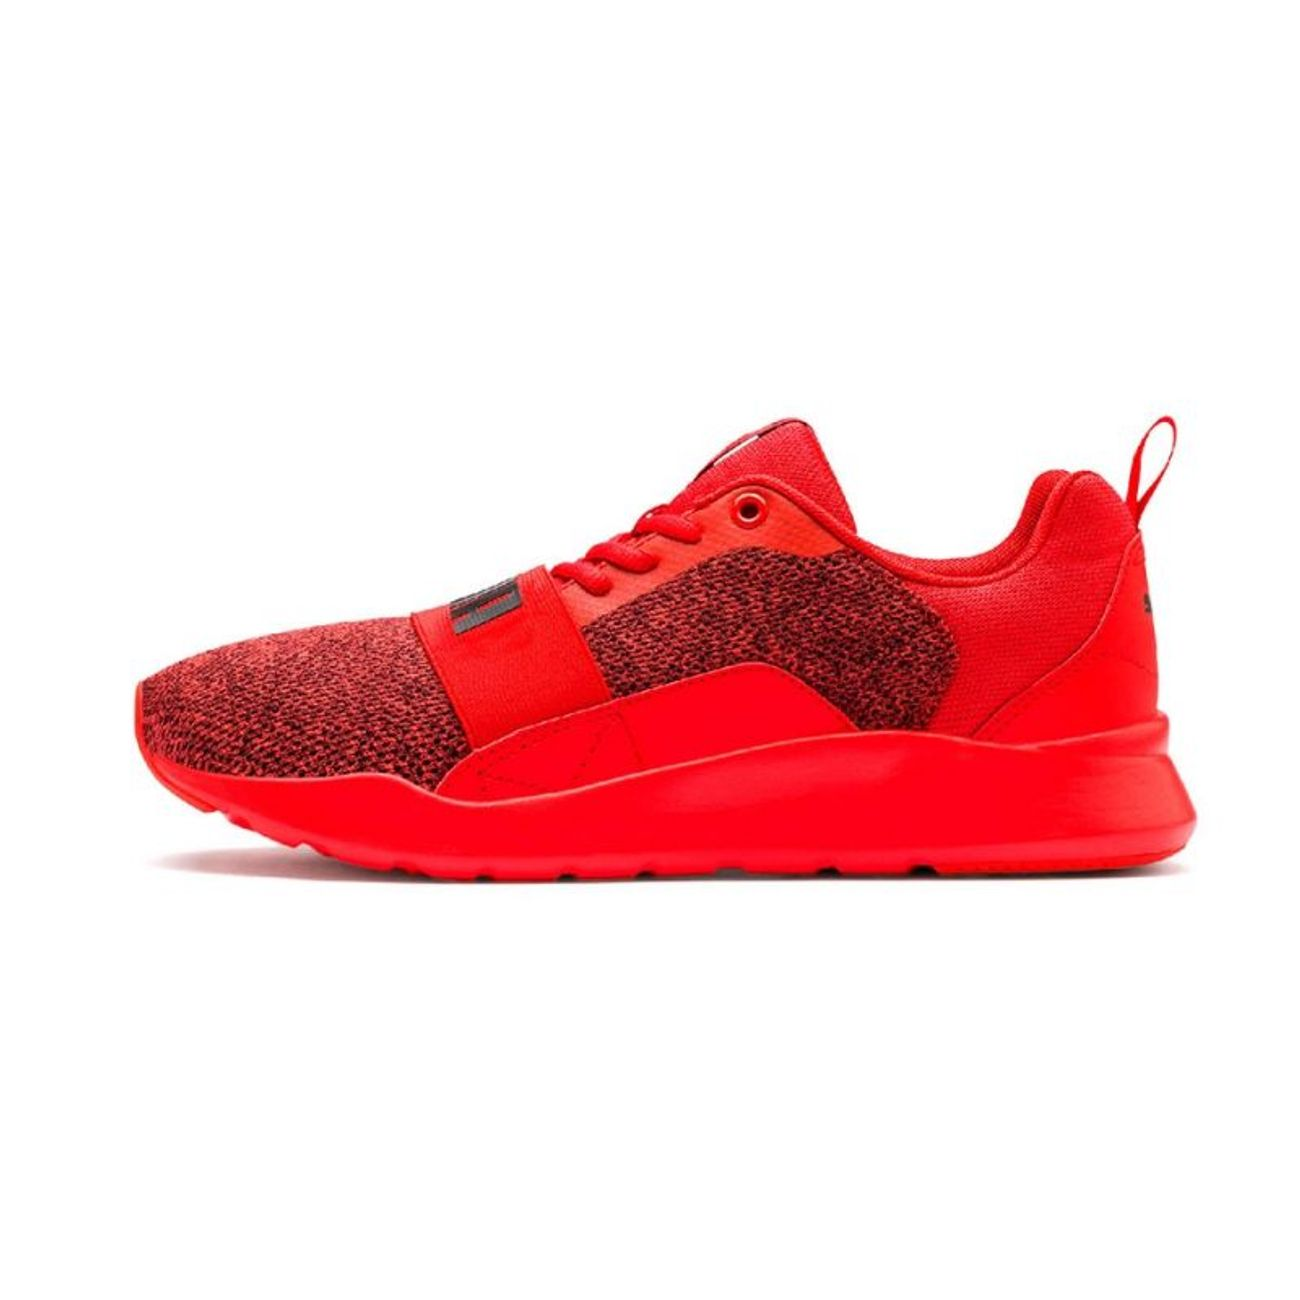 Mode Lifestyle homme PUMA Puma wired rouge